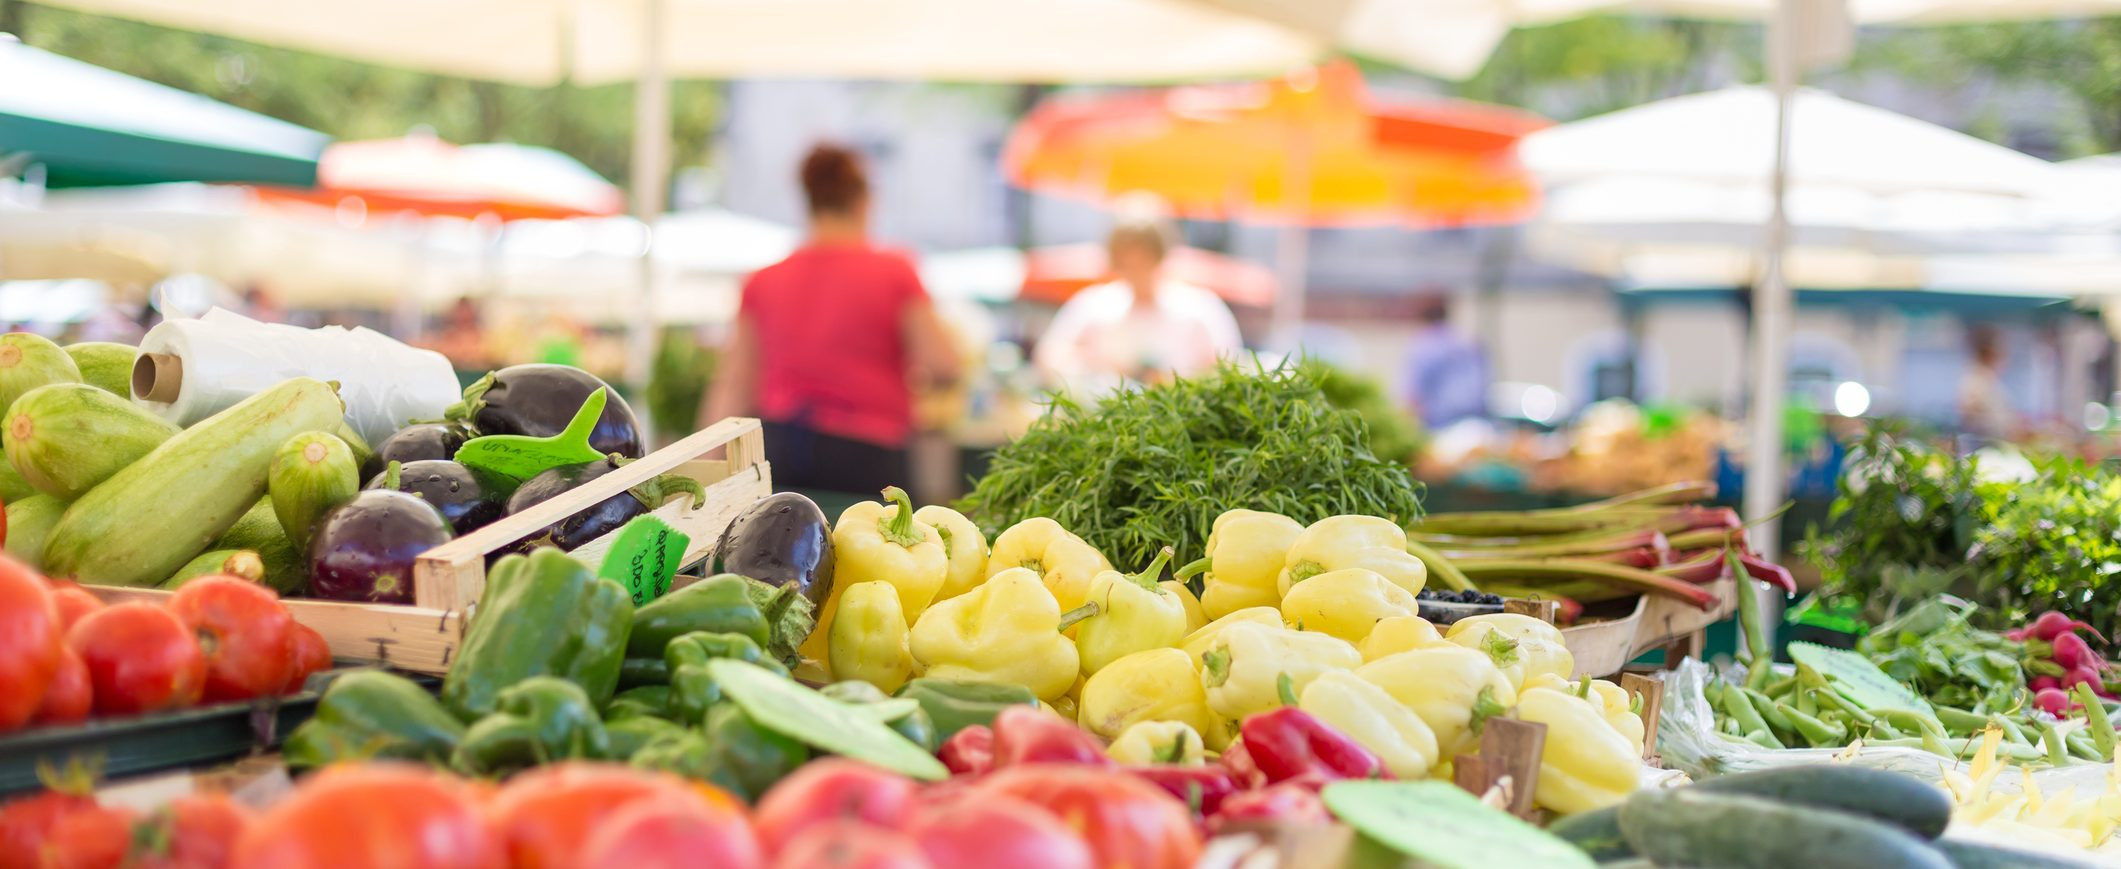 Shopping for fresh, healthy ingredients can actually help you save money